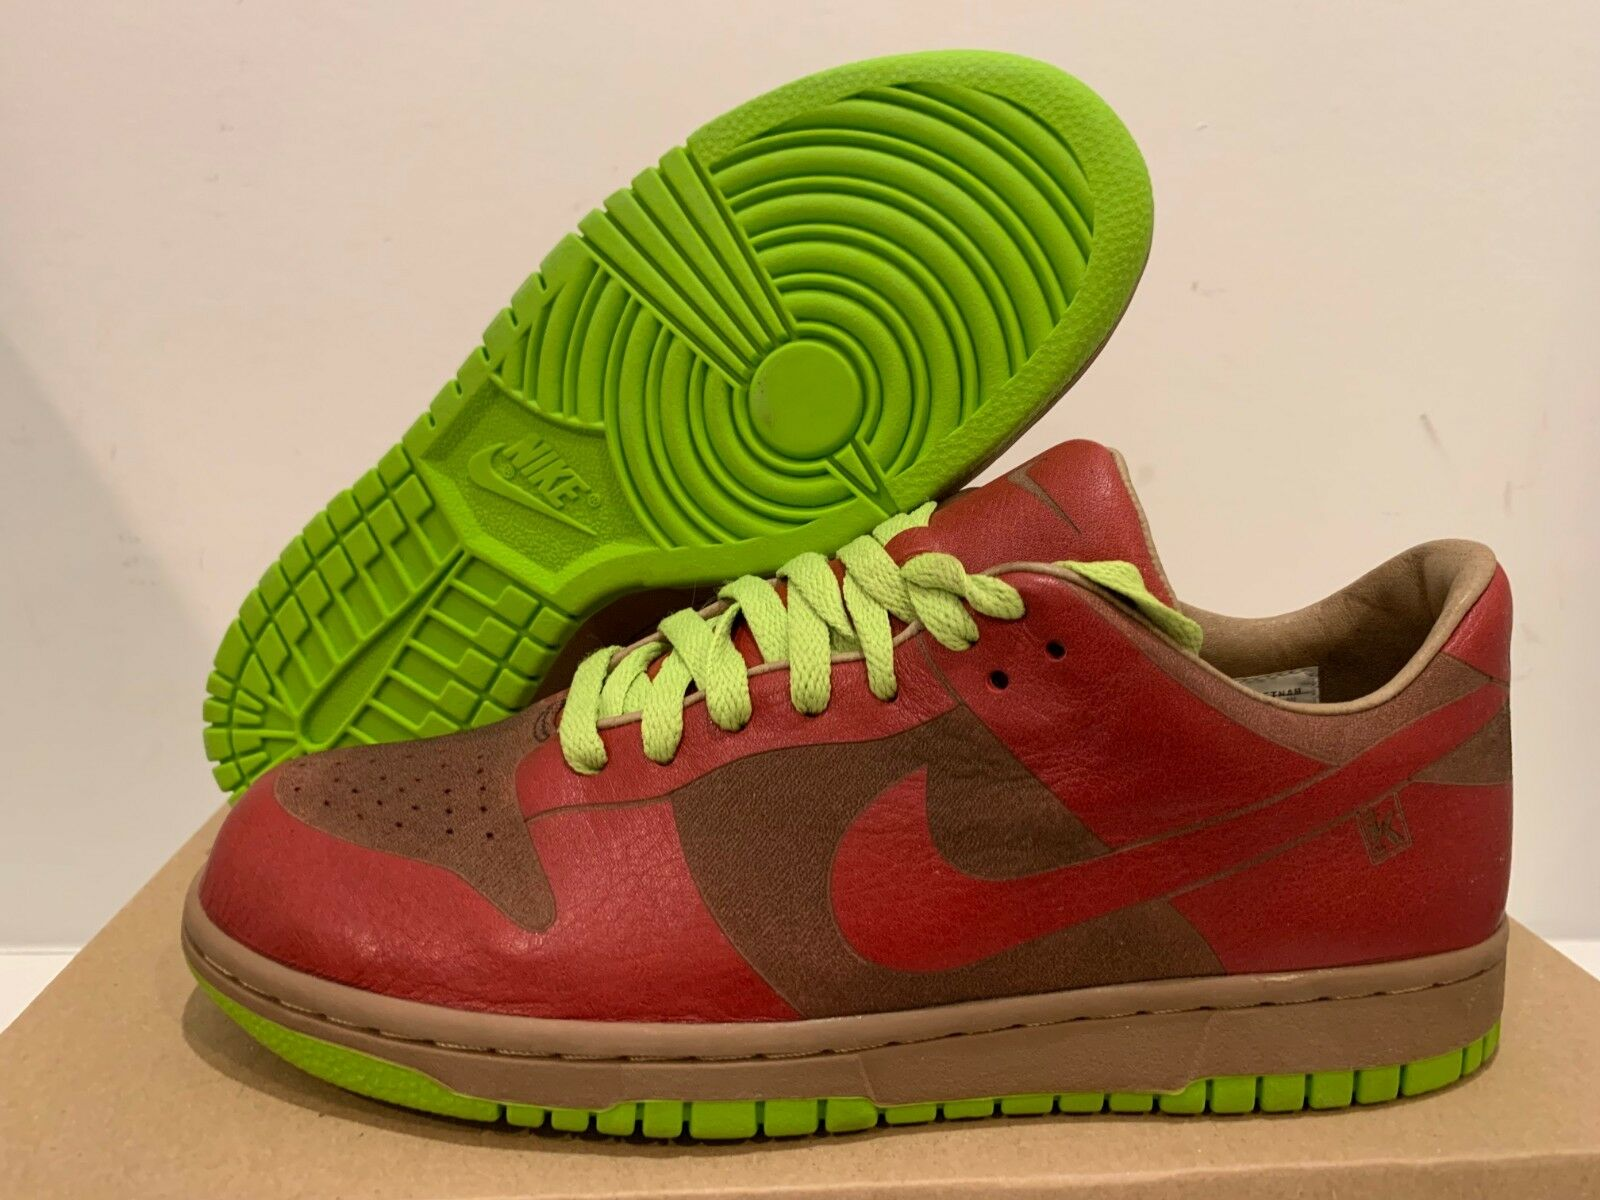 Nike Dunk Low Piece Laser Varsity Red Chartreuse Size 8 (Offer)